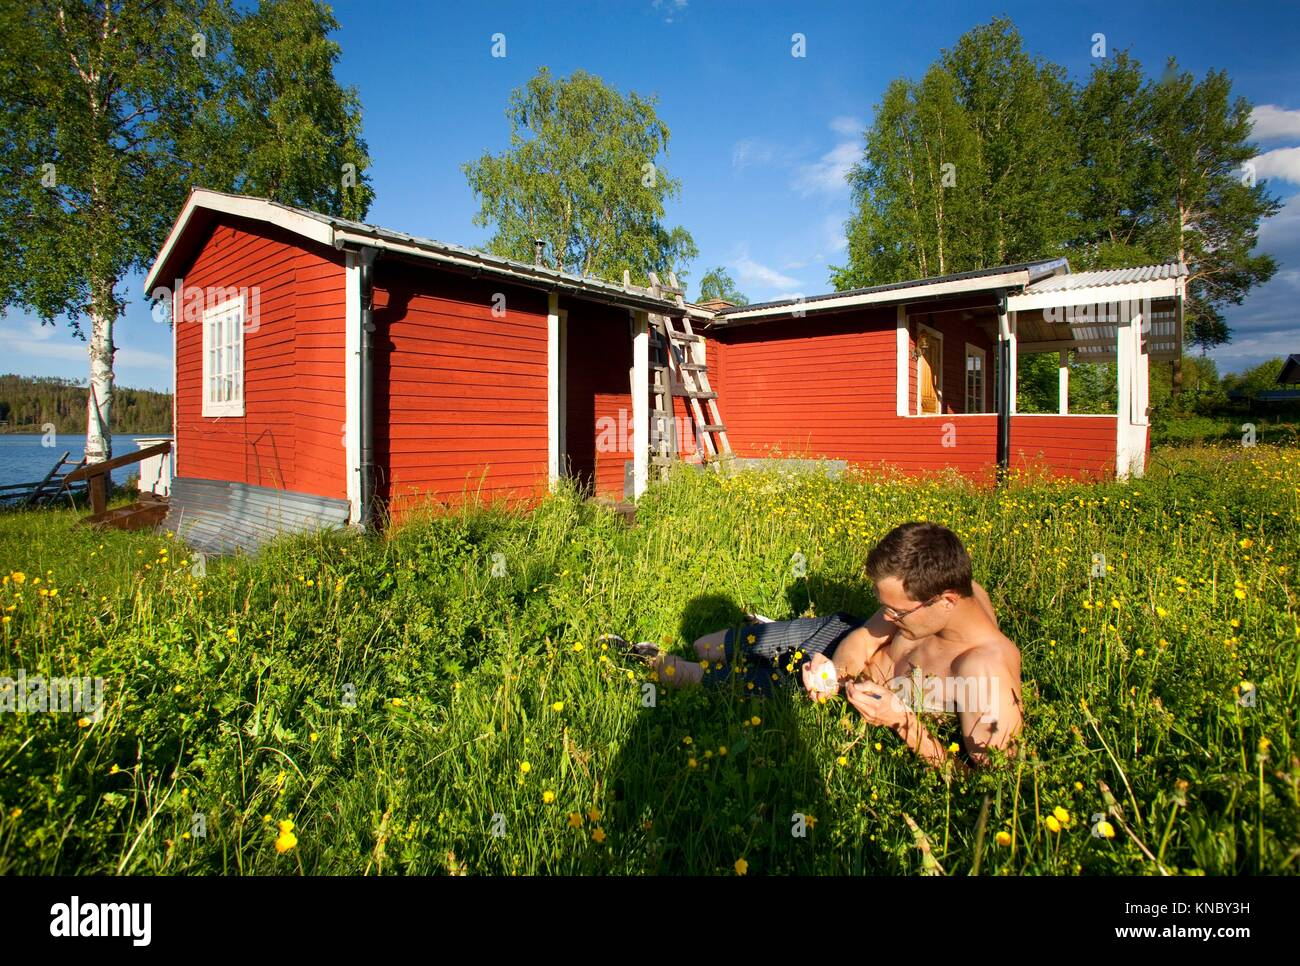 Man lying in the grass, Northern Sweden countryside. - Stock Image